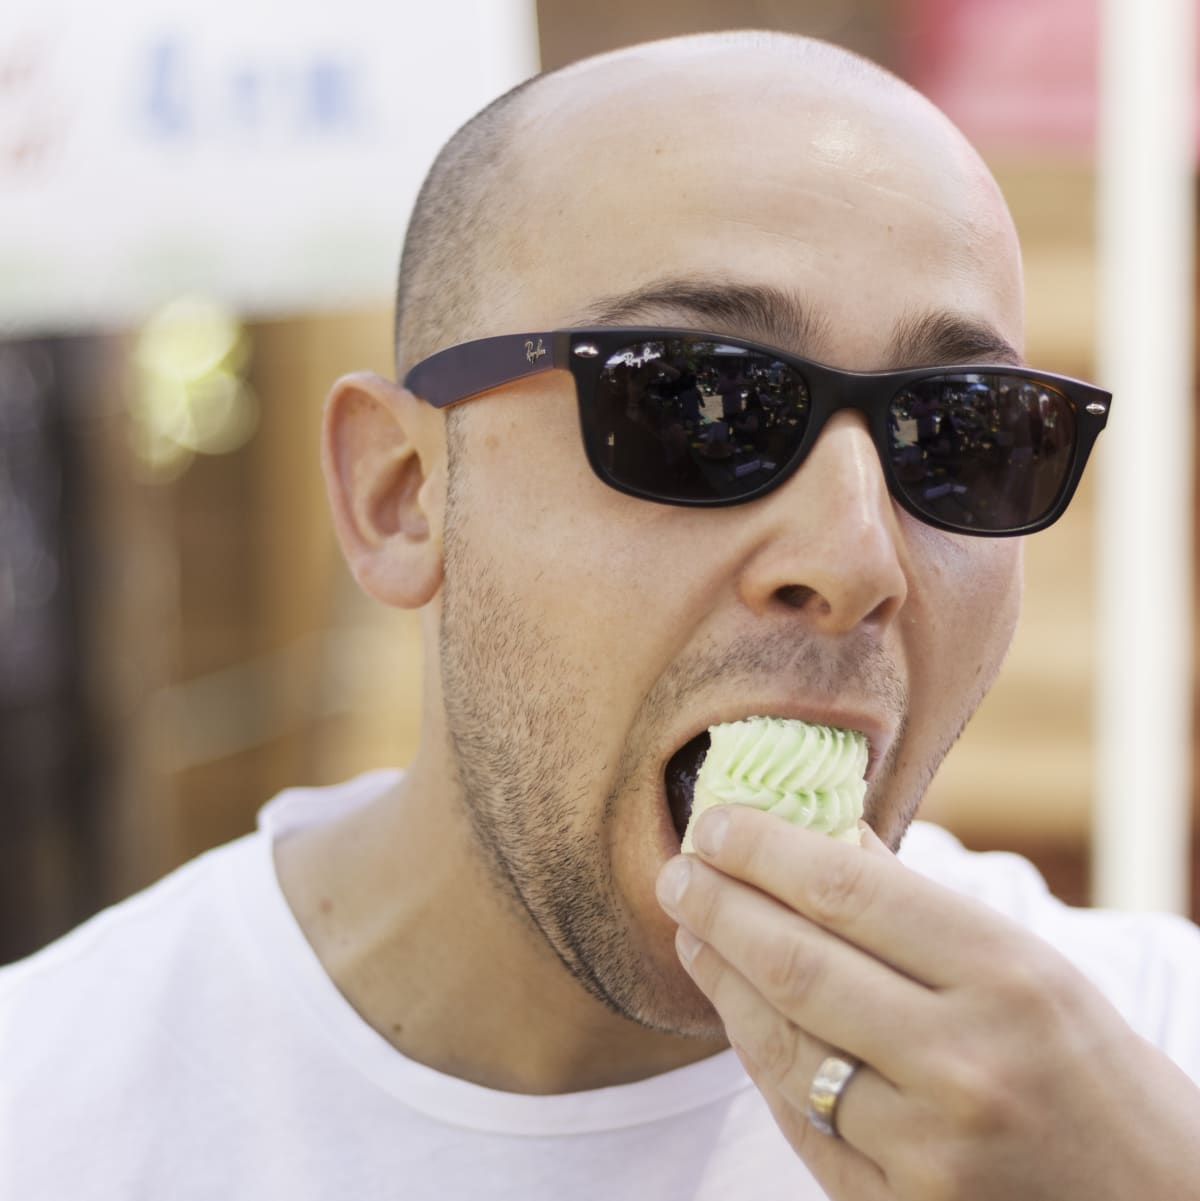 Karl Henderson samples the Margarita Cupcake from Gigi's, which won most creative recipe award at Margarita Taste-Off